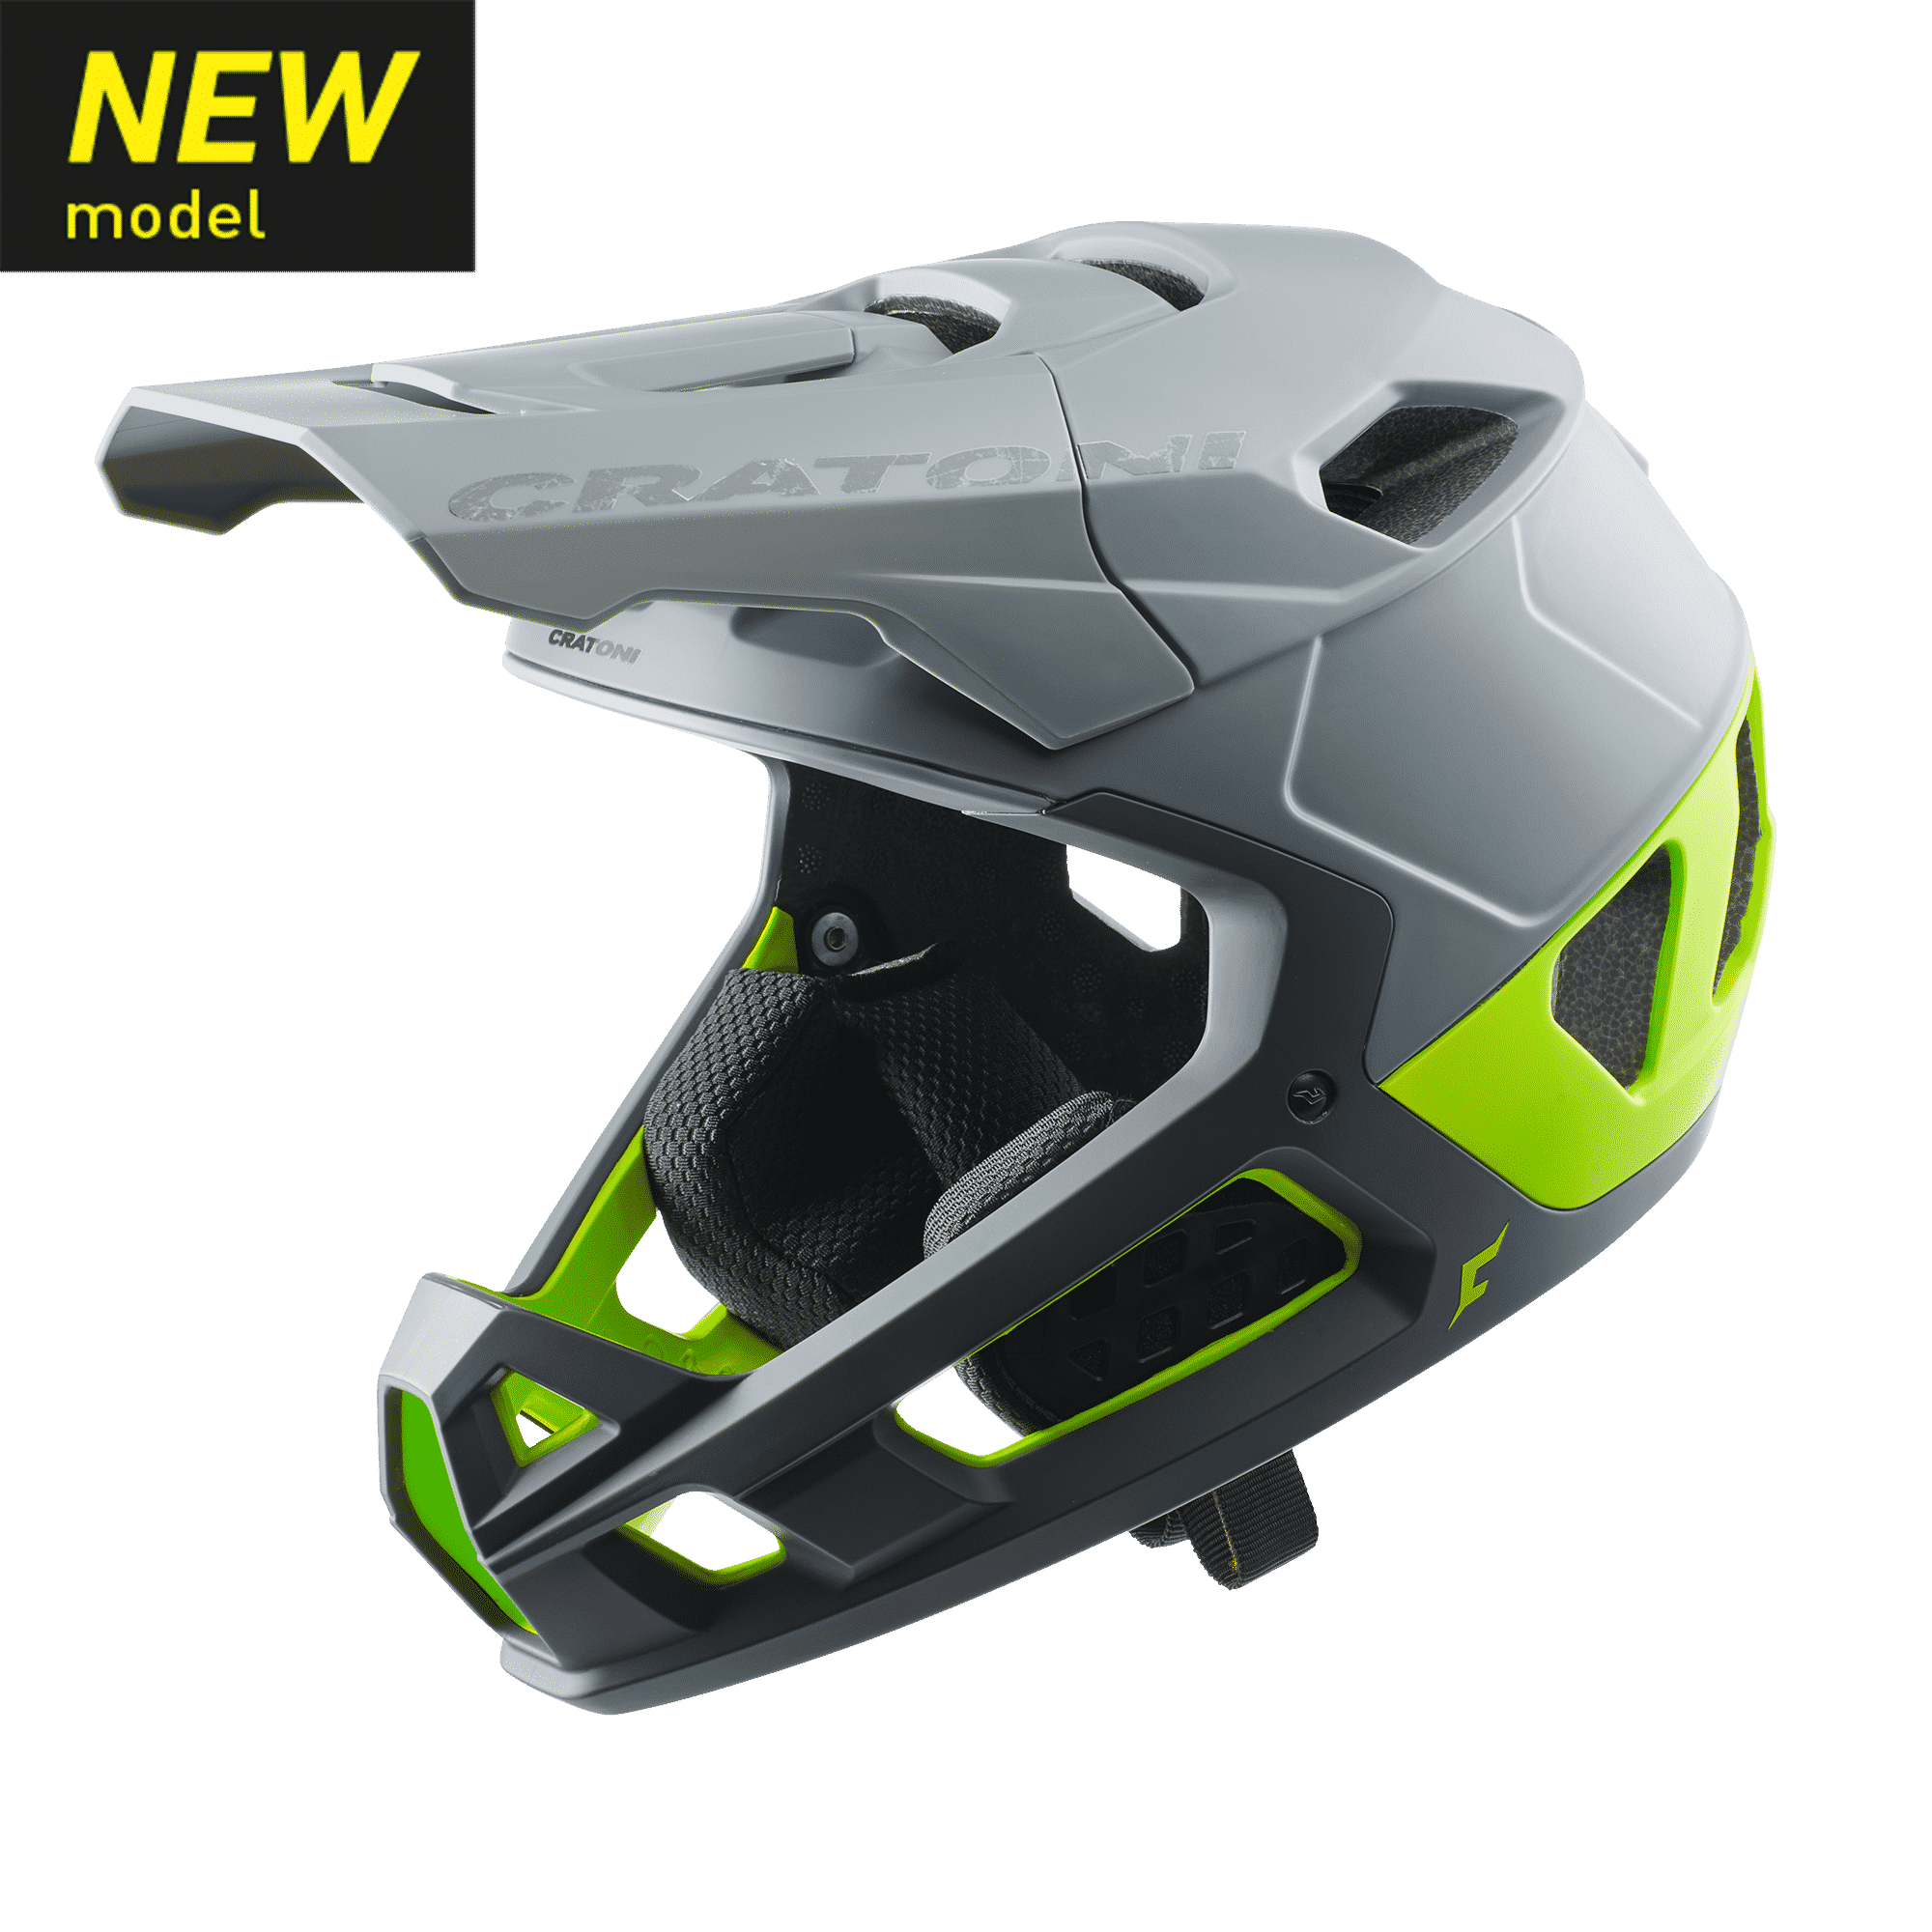 Helm Cratoni Interceptor 2.0 new model